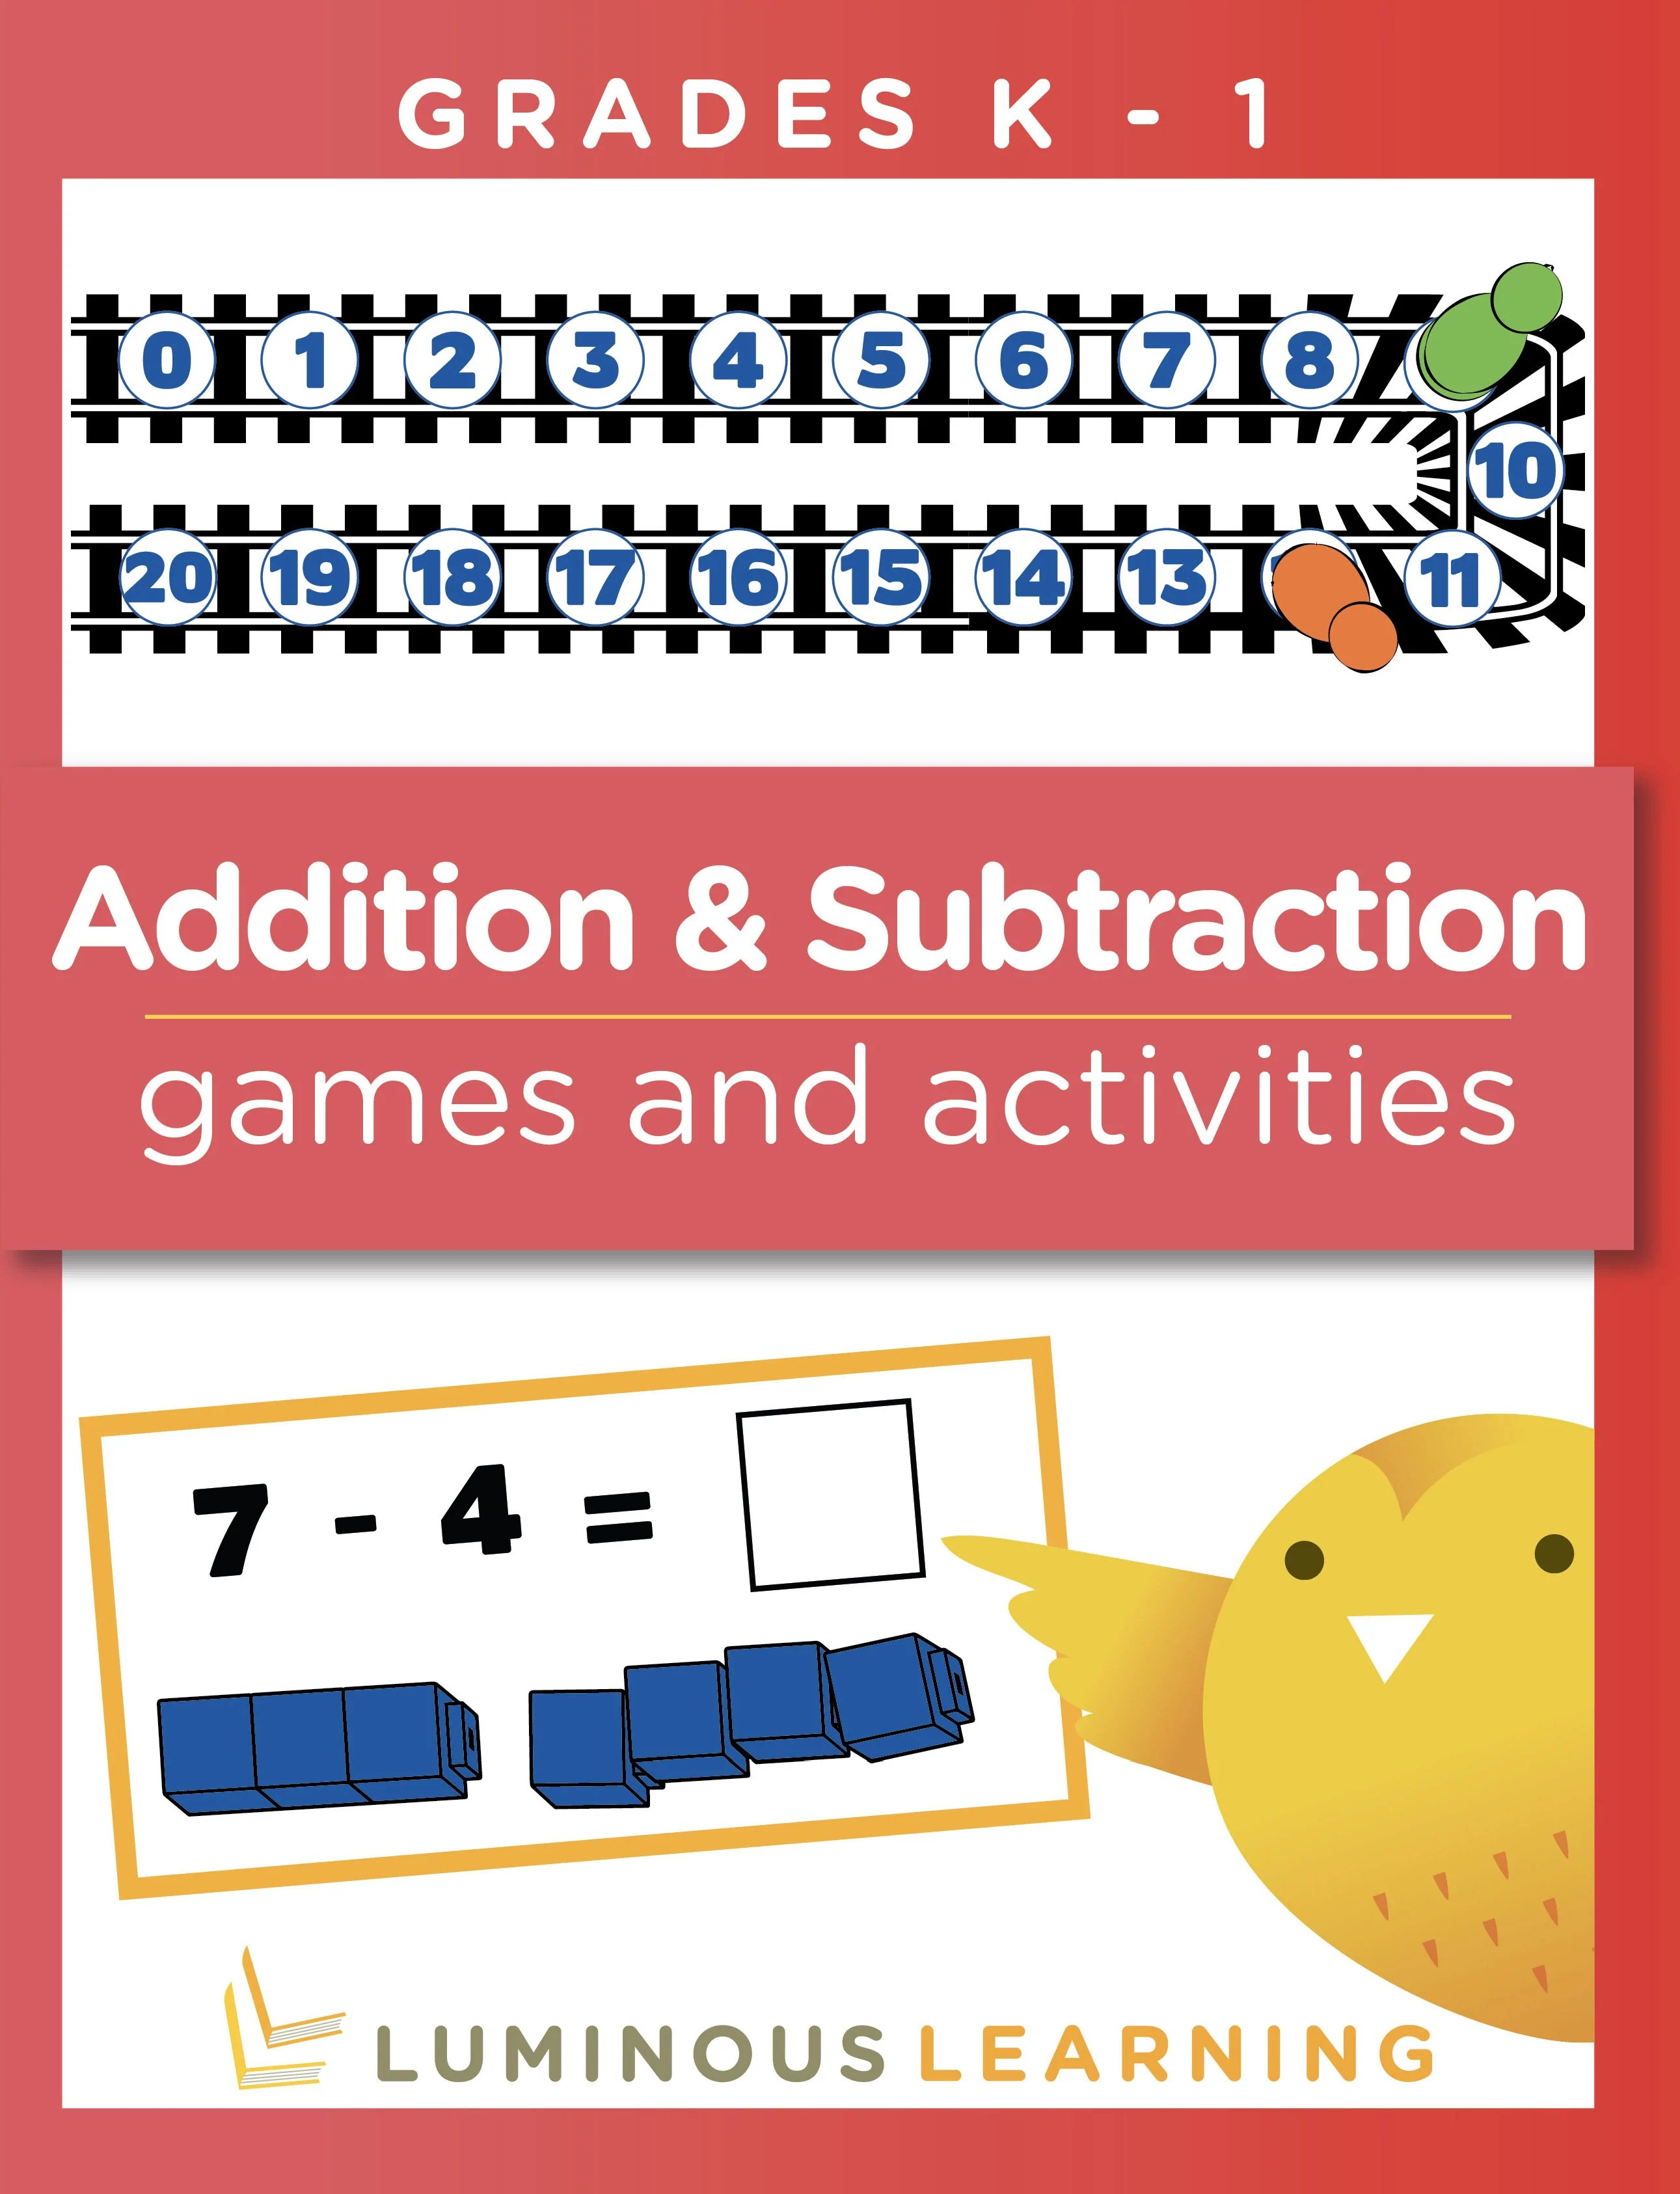 hight resolution of Addition and Subtraction Games and Activities - Grades K - 1